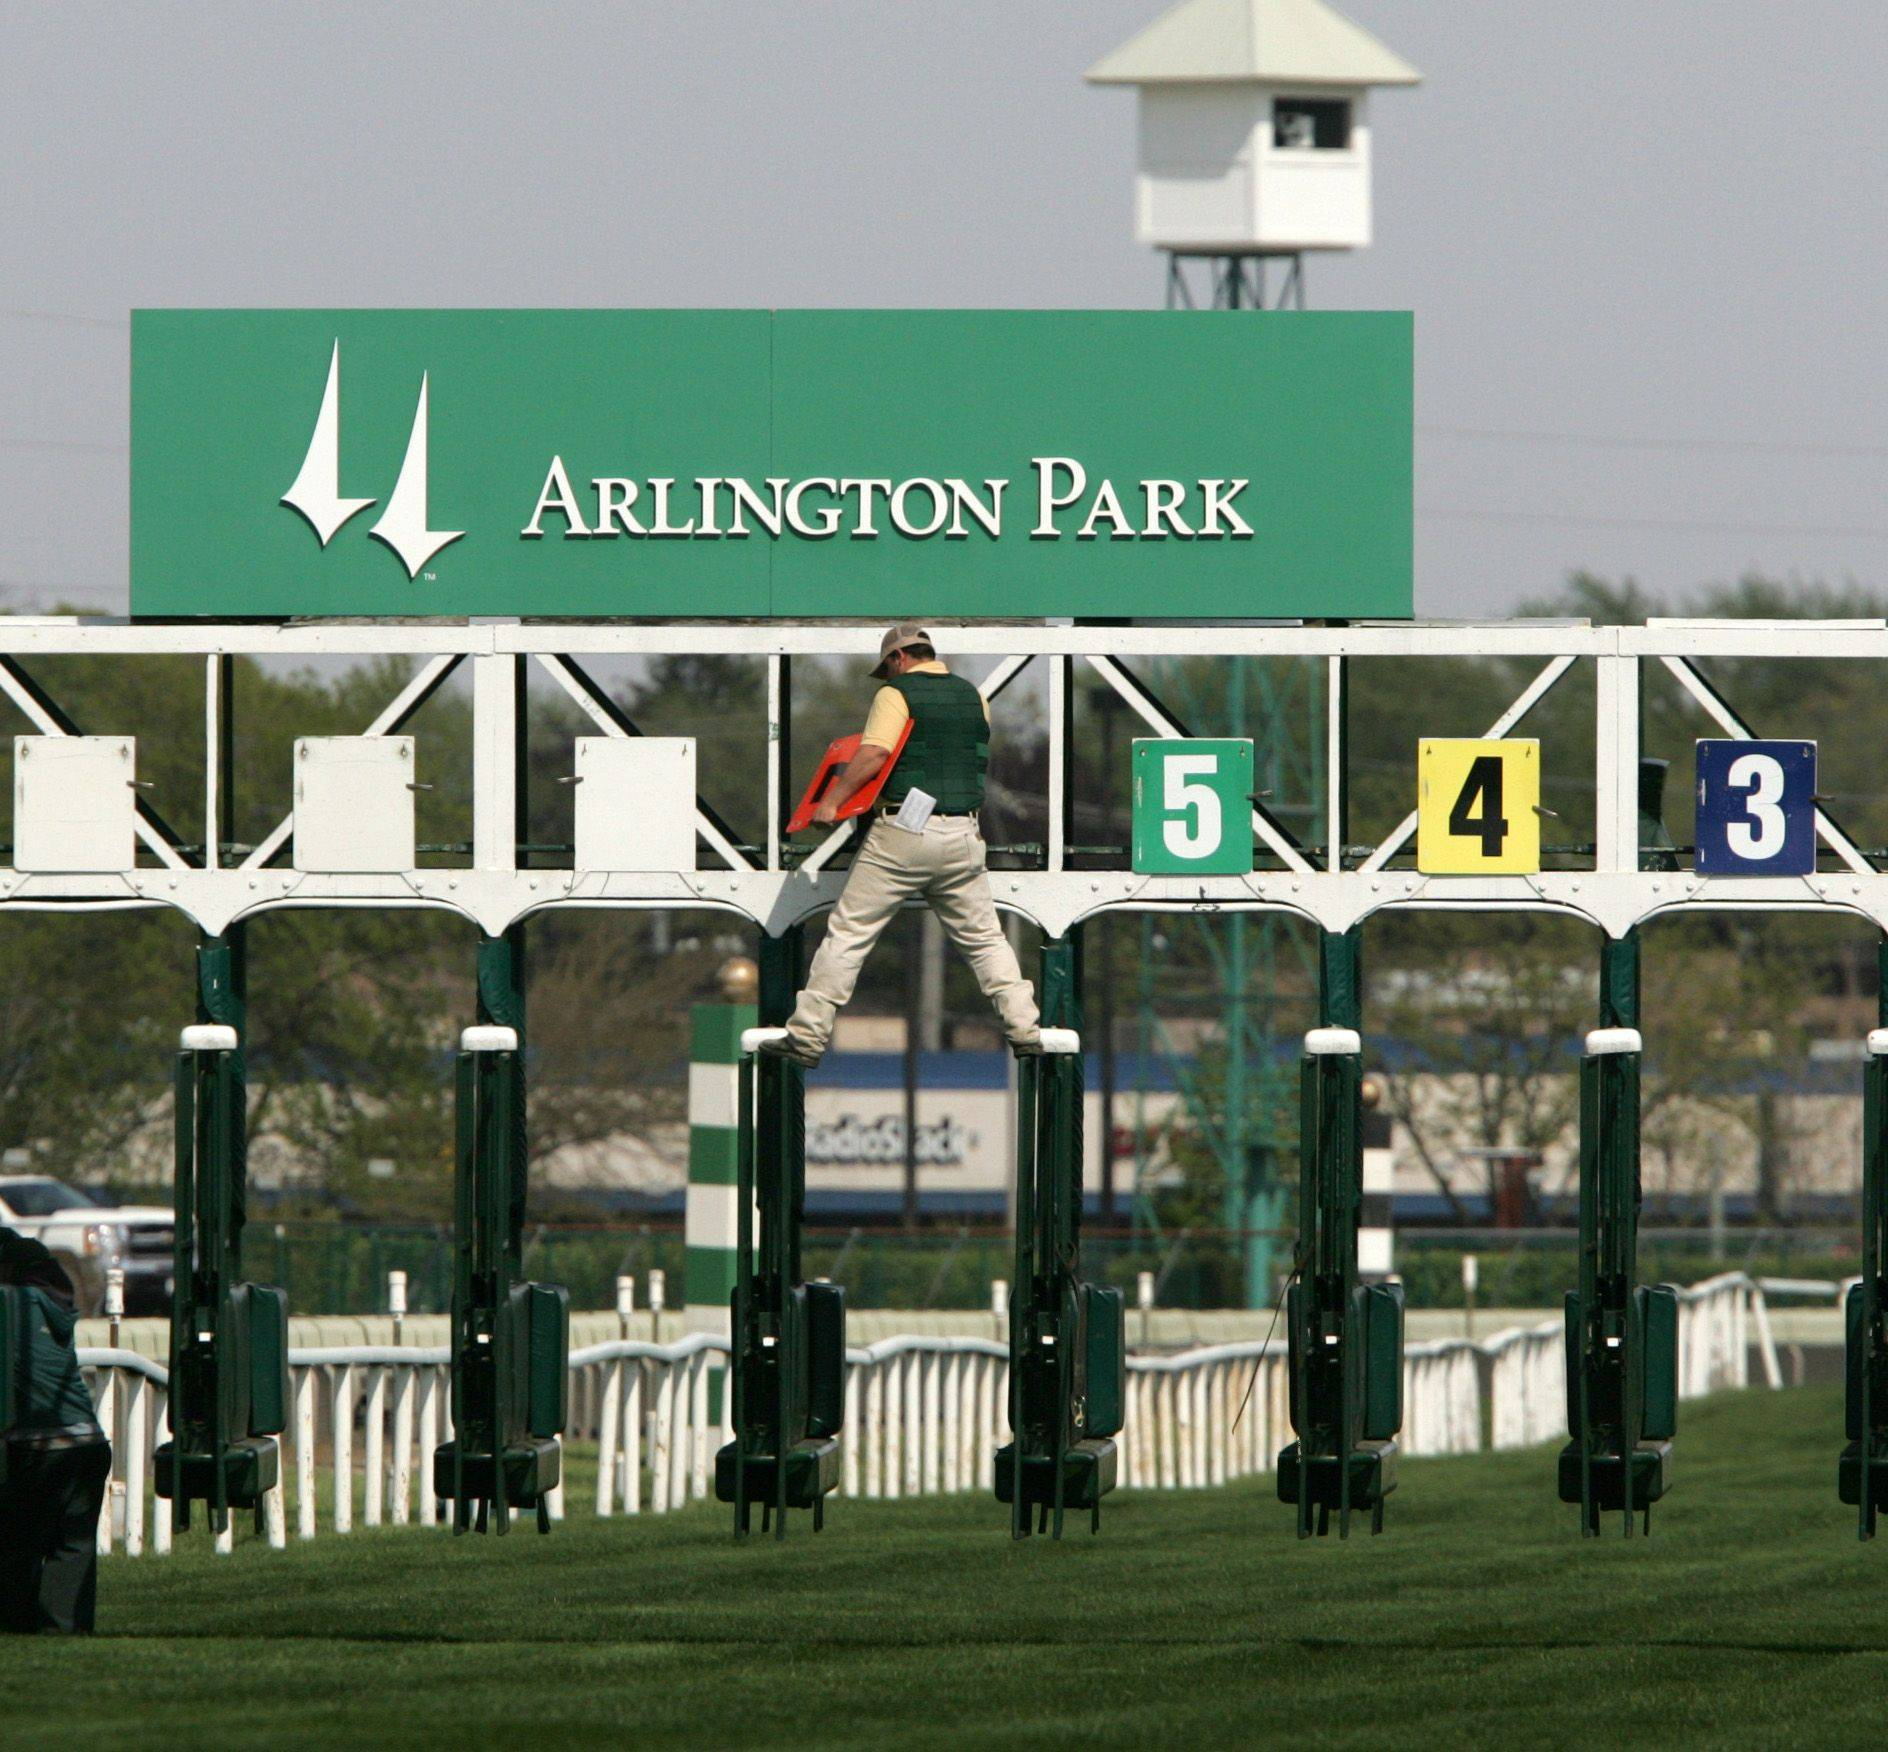 Arlington Park, in conjunction with the Illinois Thoroughbred Horsemen's Association, has come up with a financial incentive to help increase the number of larger fields (seven horses or more) than it had last season.